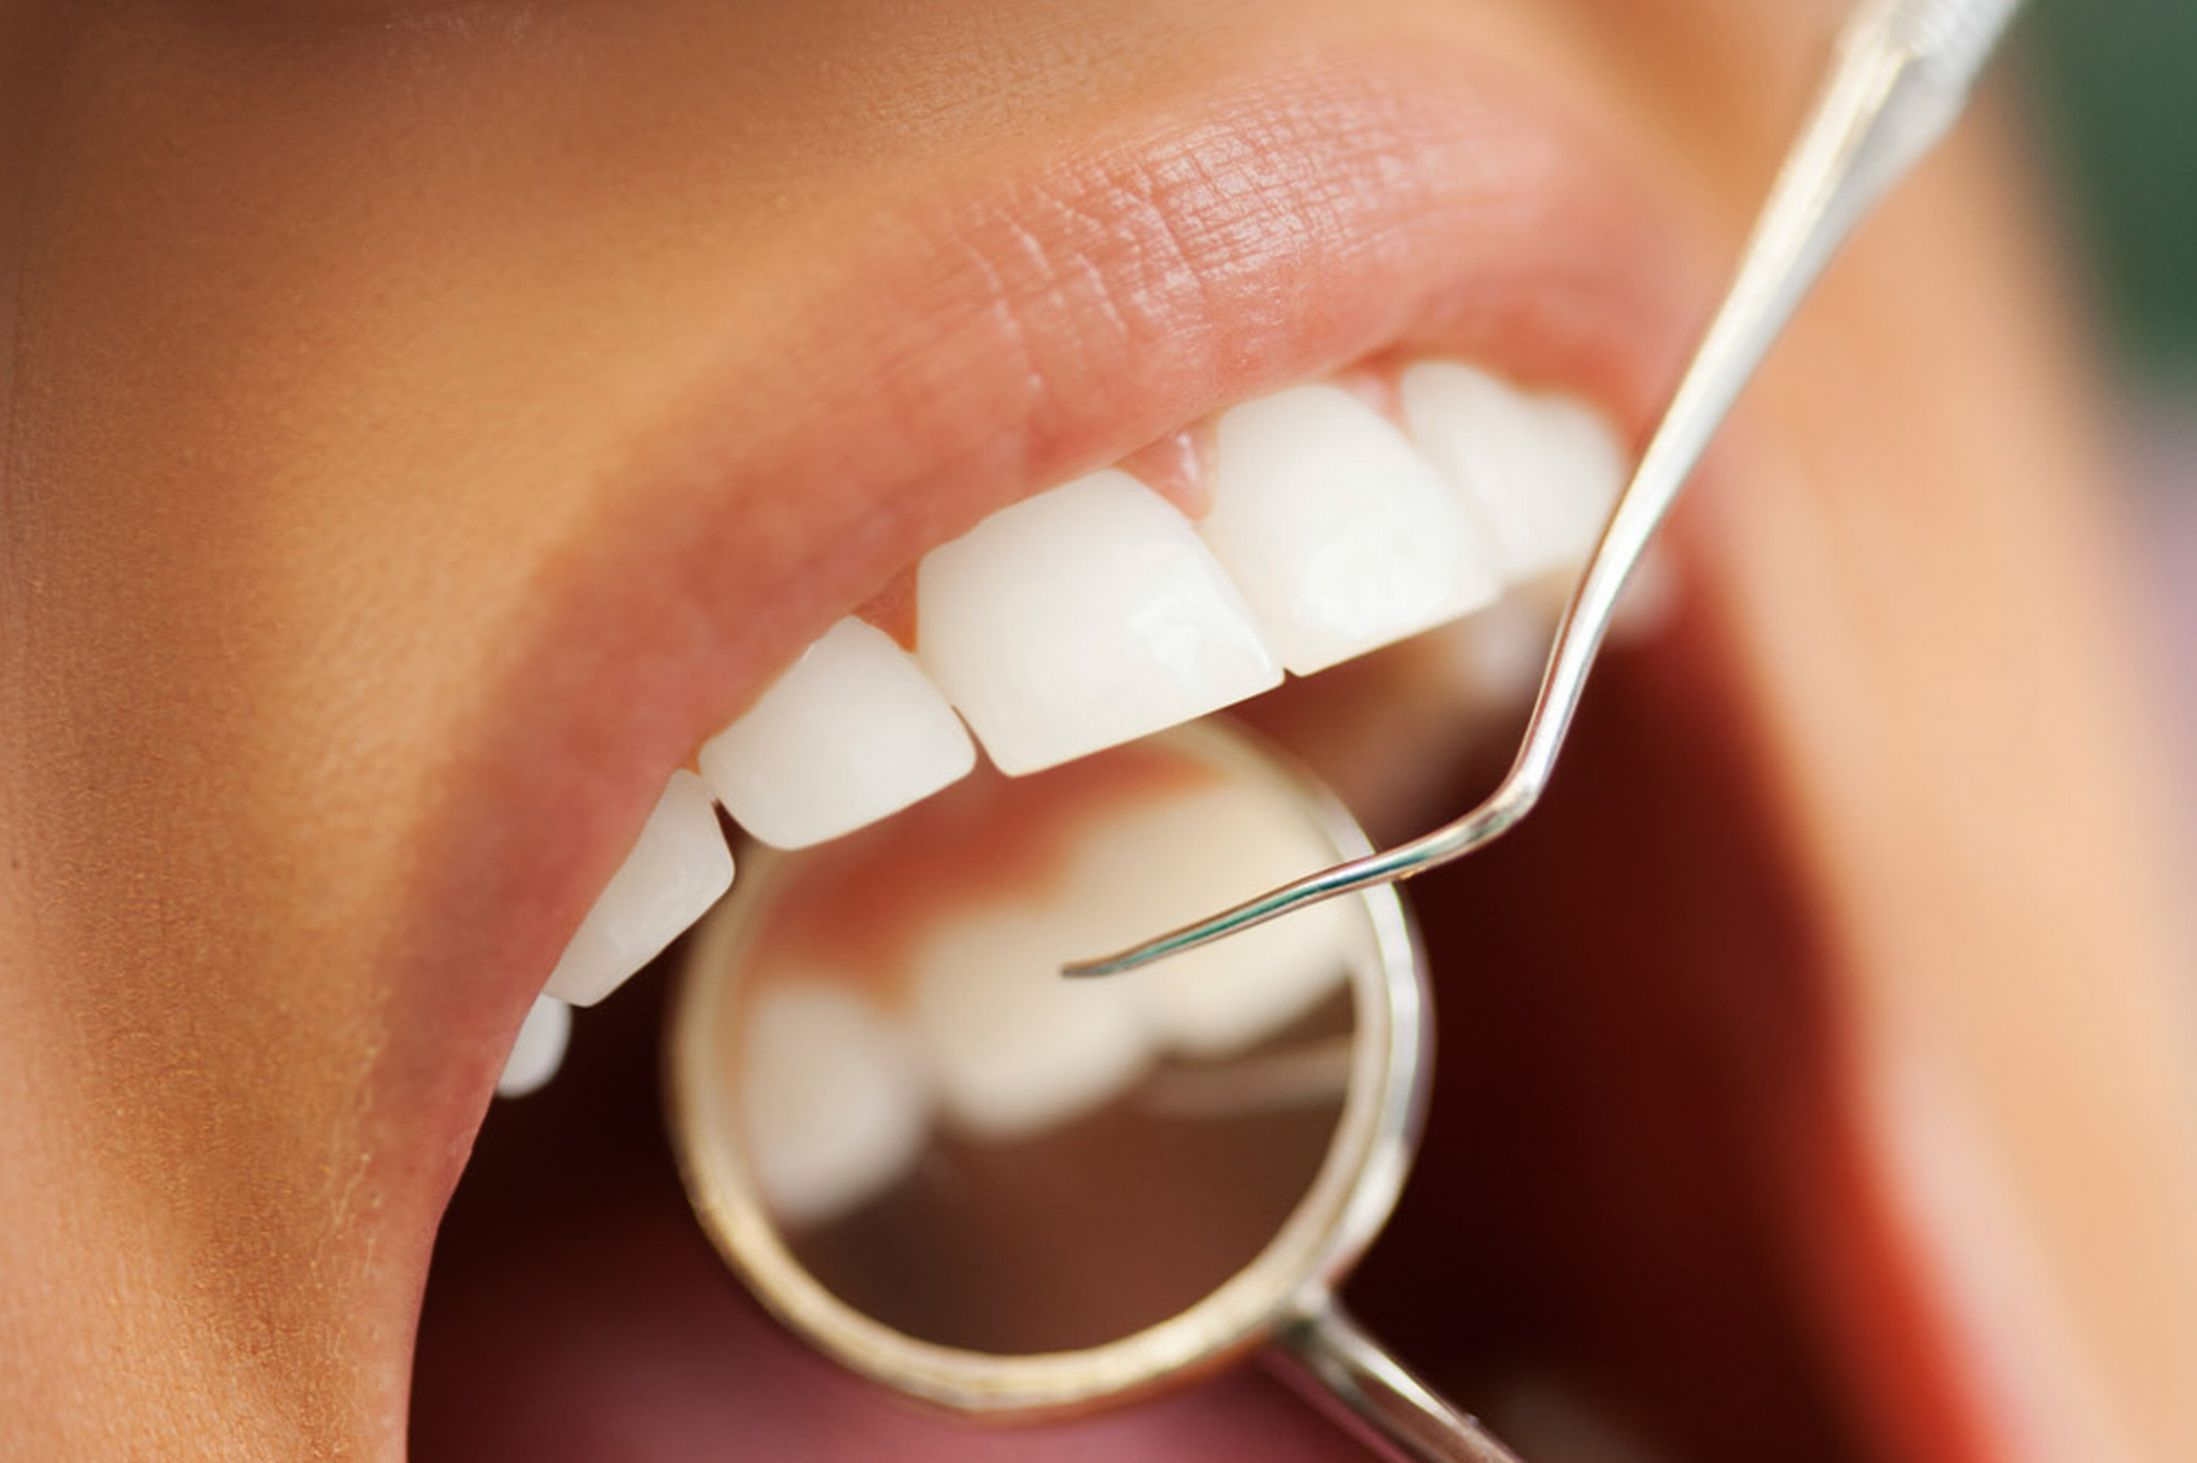 Beyond Teeth: What's Inside Your Mouth?